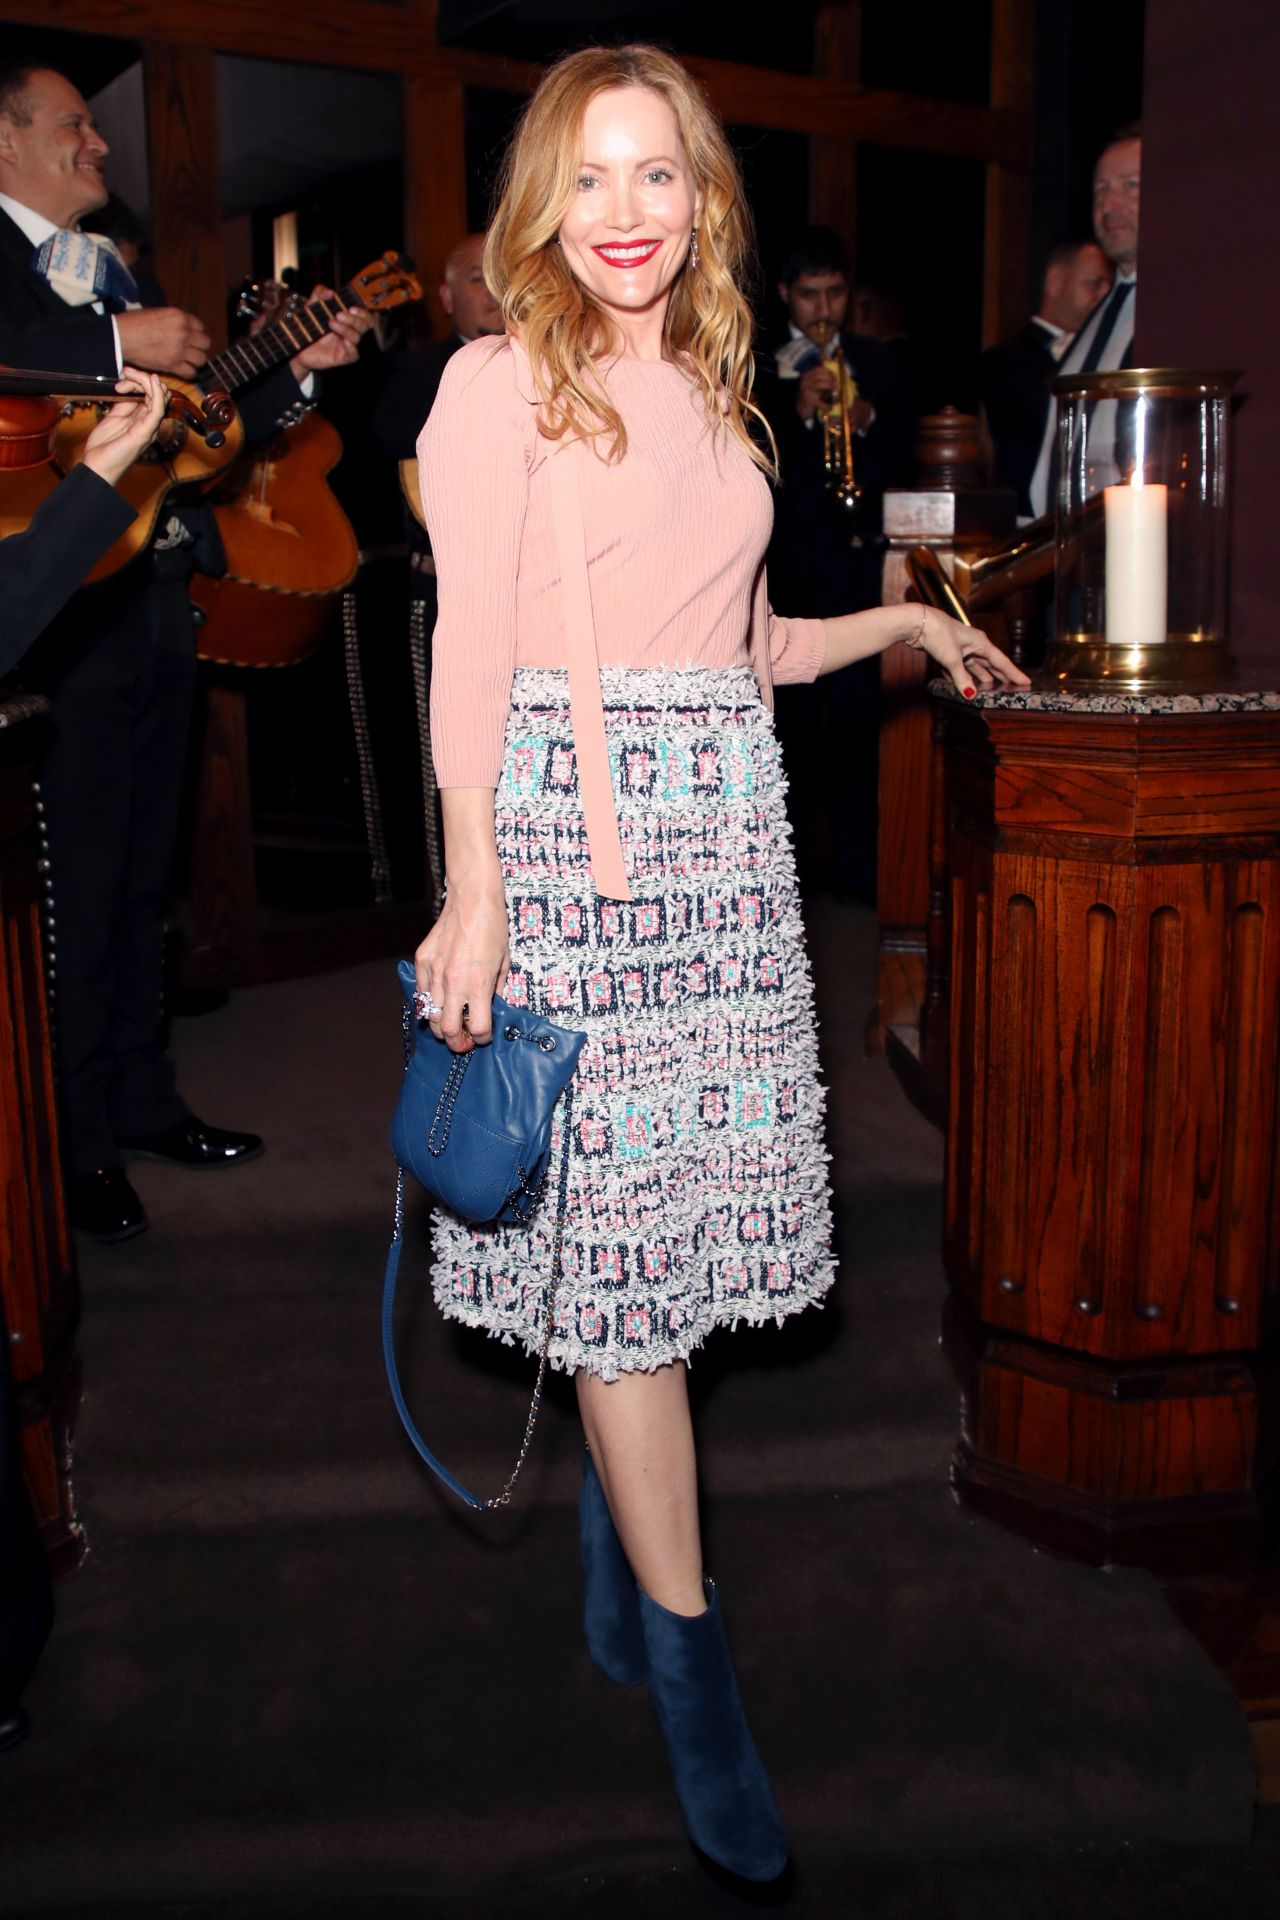 http://celebmafia.com/wp-content/uploads/2018/03/leslie-mann-chanel-and-charles-finch-pre-oscar-dinner-in-la-03-03-2018-7.jpg